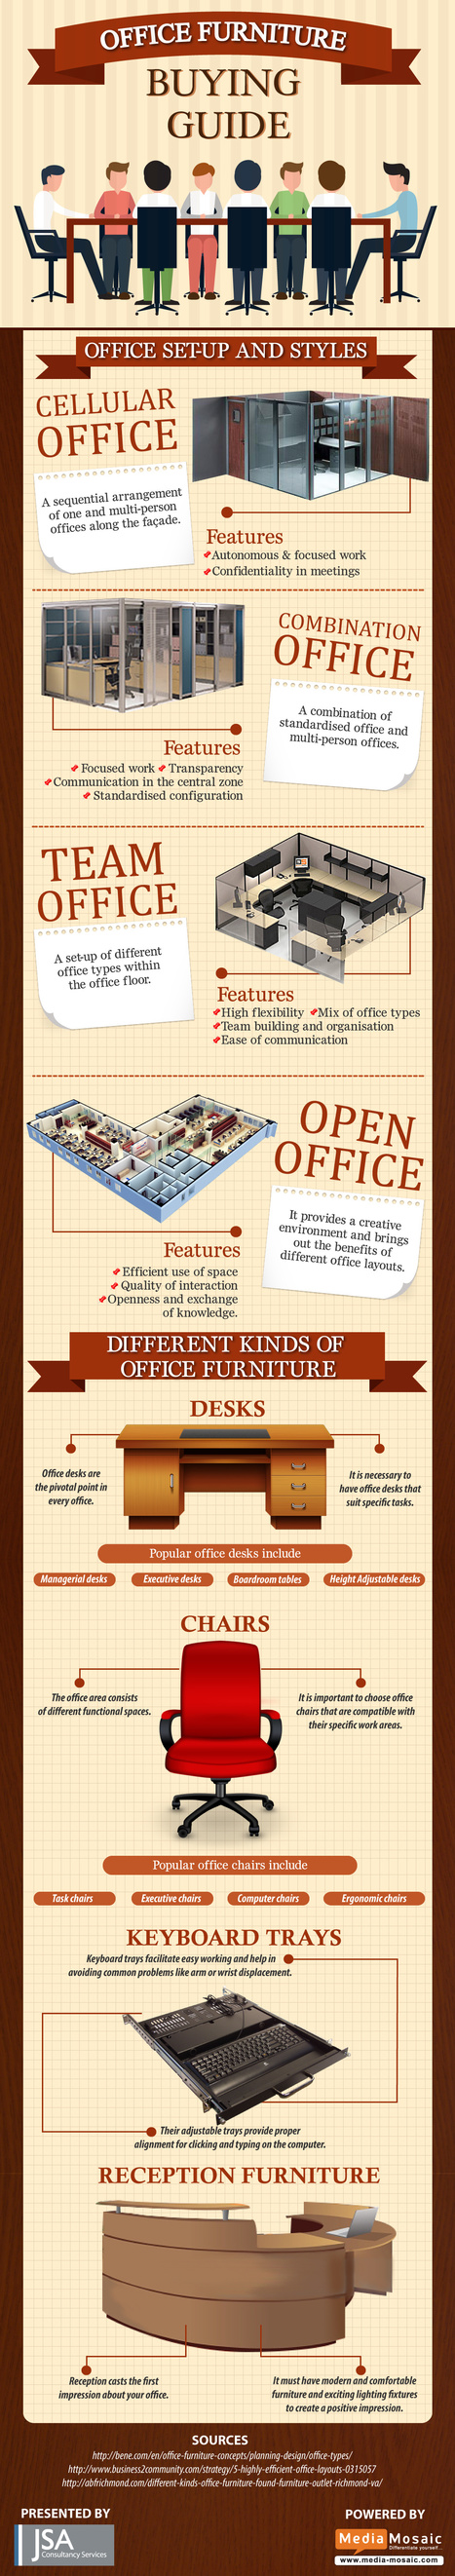 Office Furniture Buying Guide – Infographic – JSA Consultancy Service | Infographic | Scoop.it